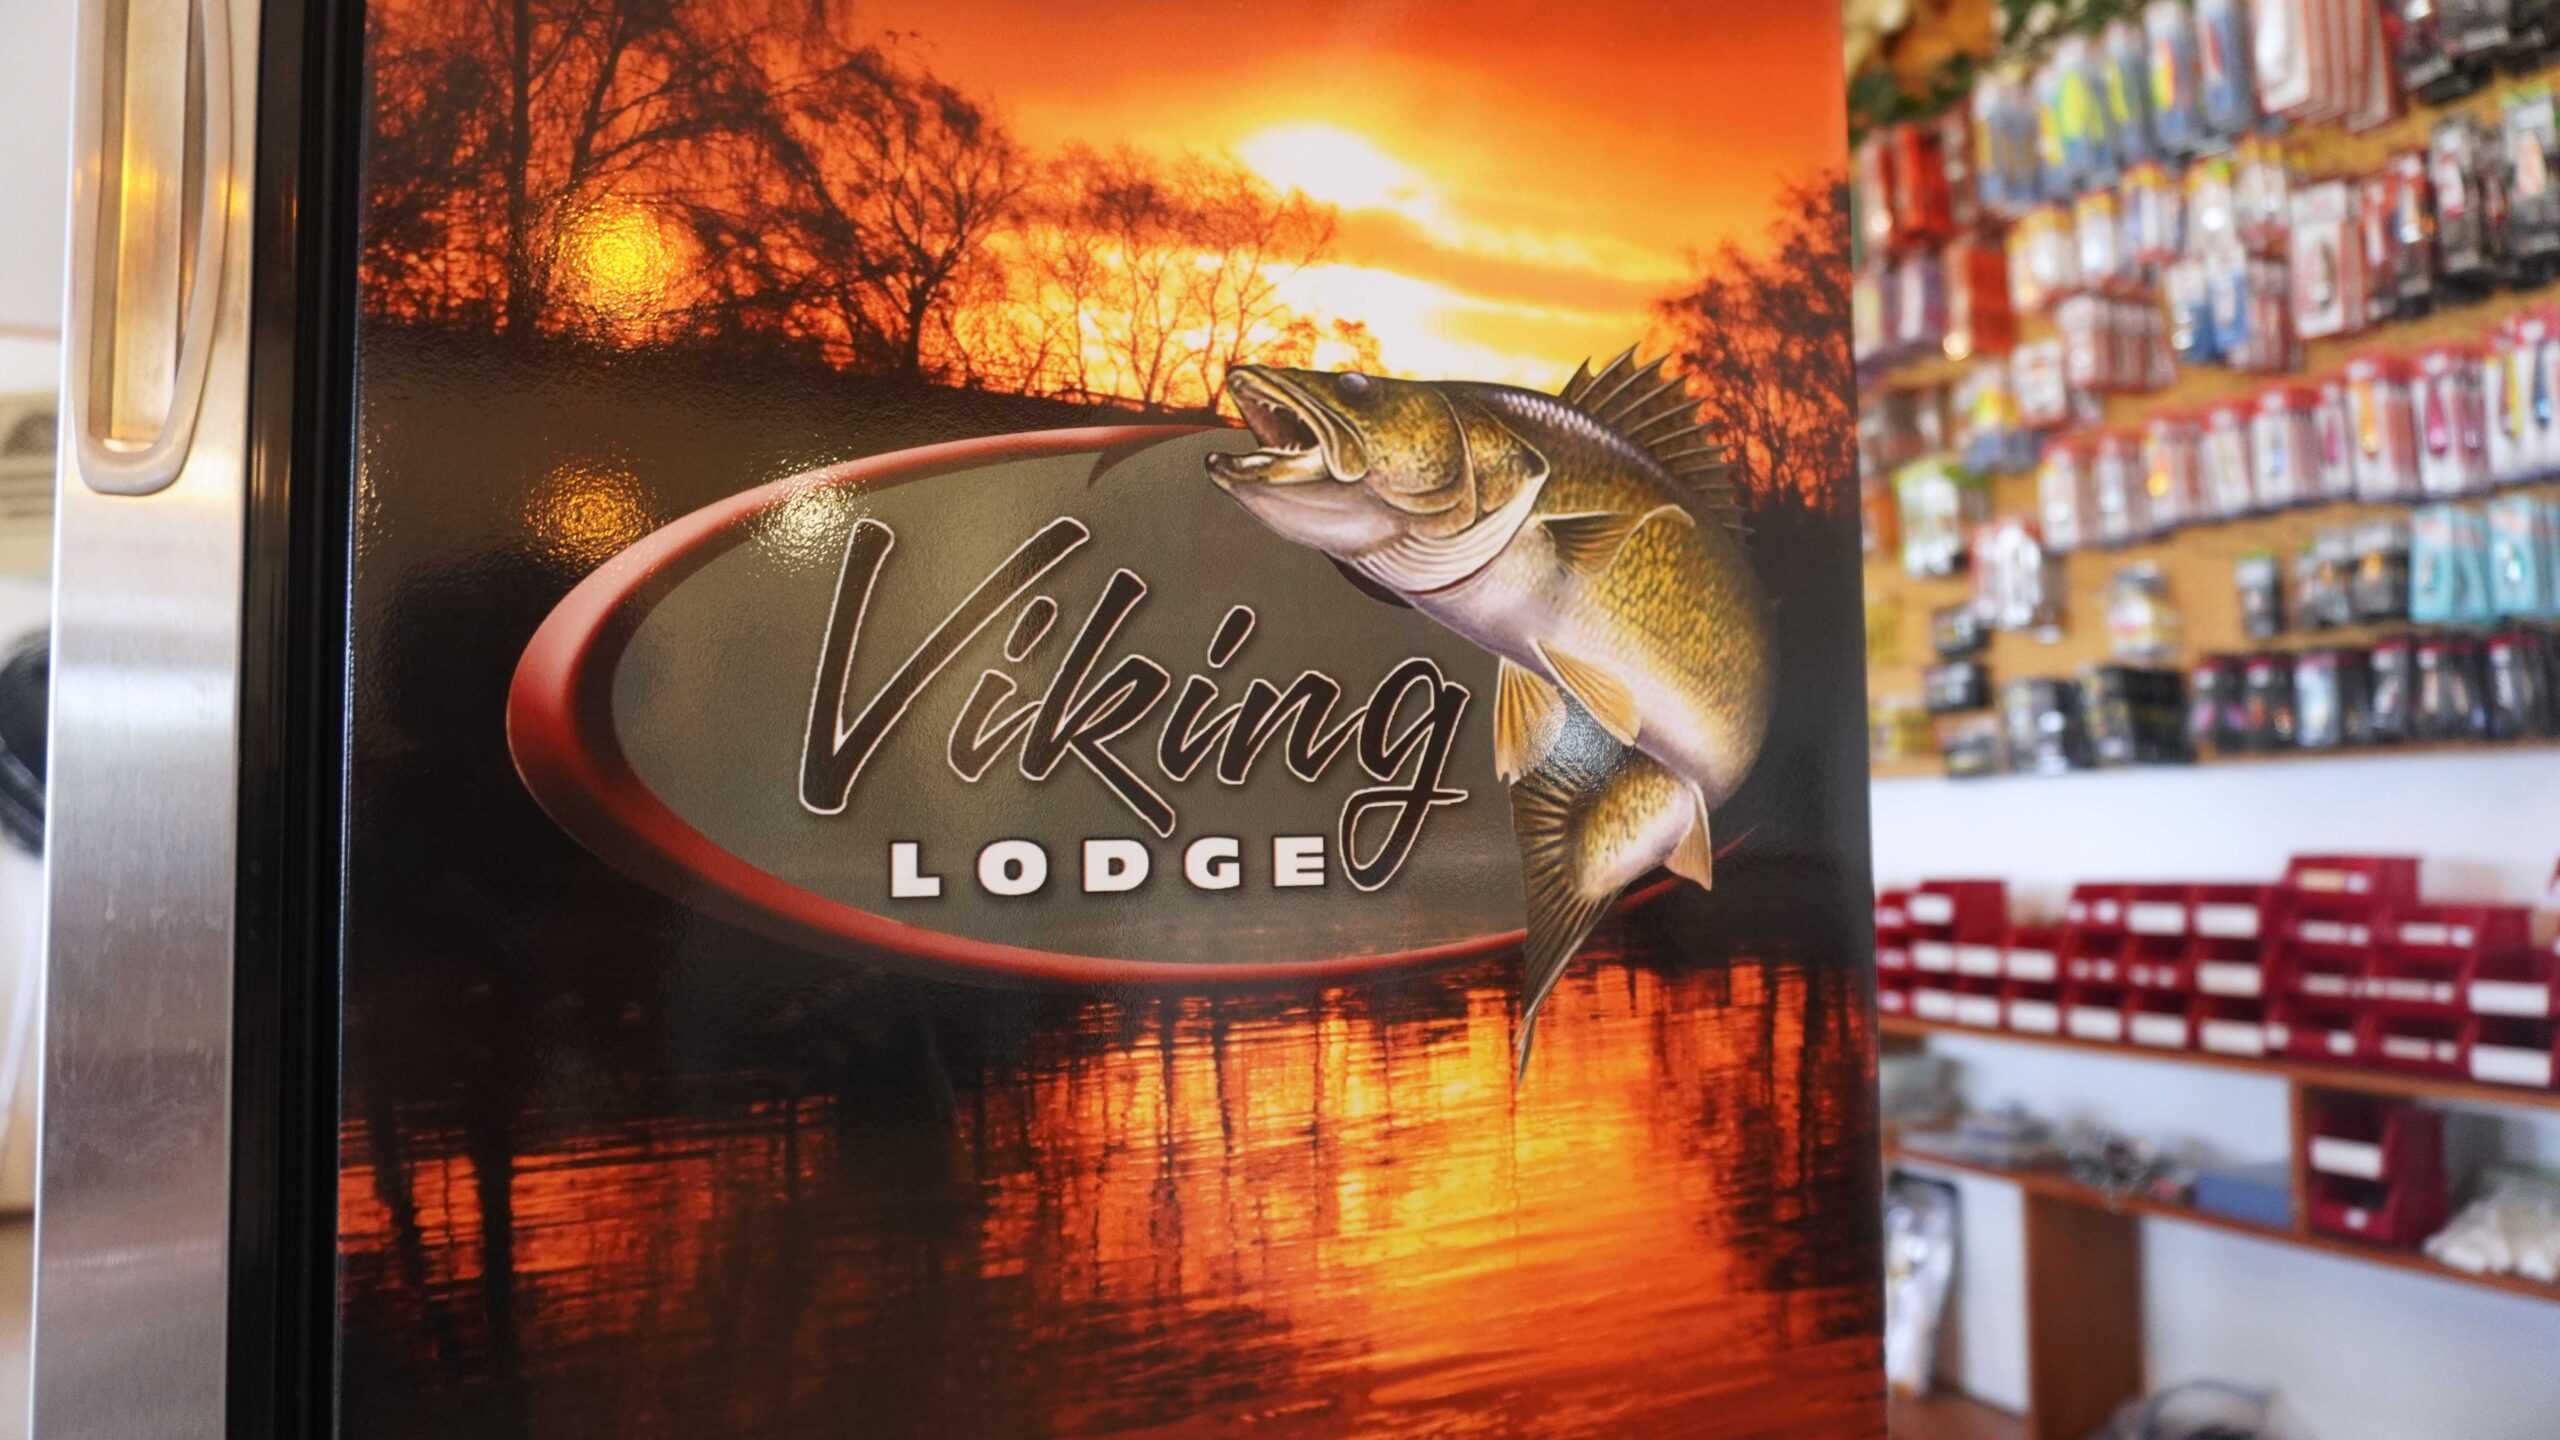 Viking Lodge